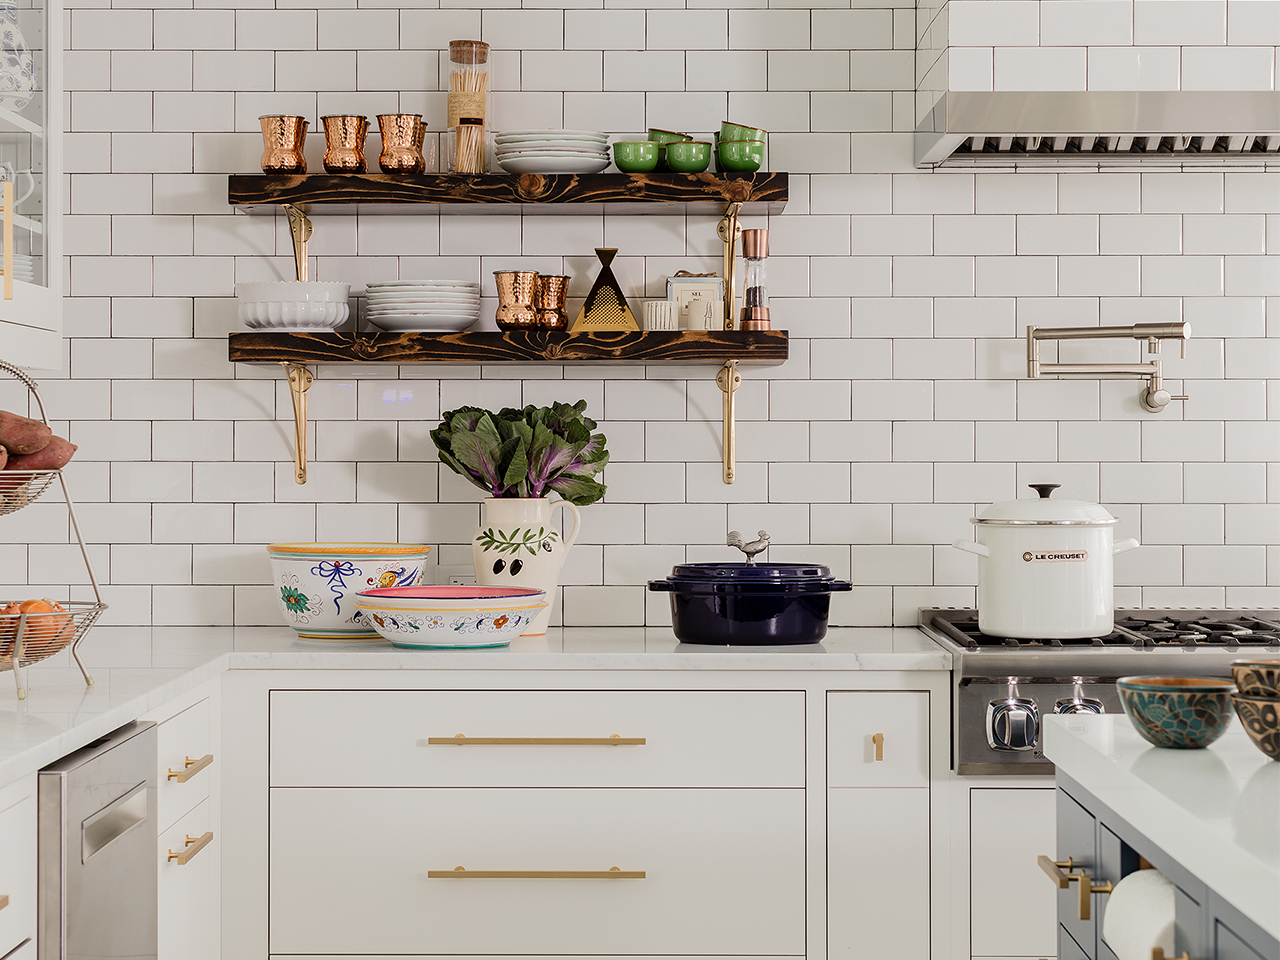 20 Of The Most Gorgeous Kitchen Design Ideas On Pinterest